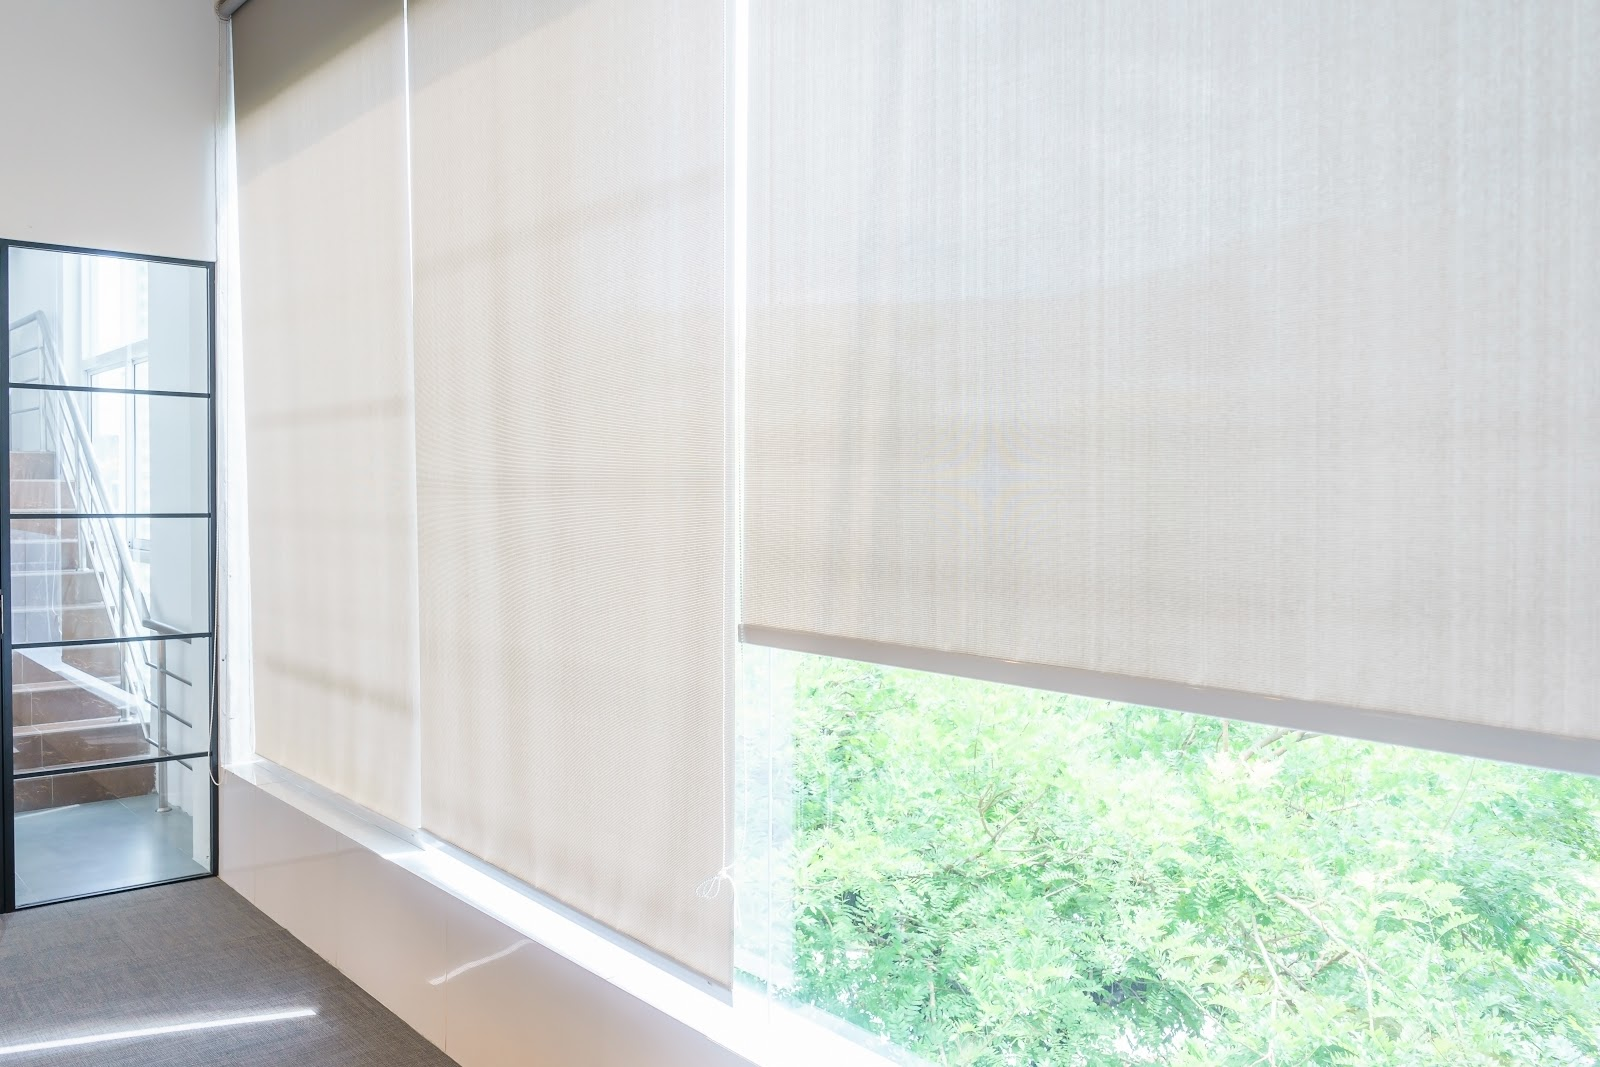 How To Clean Roller Blinds: A Step-by-Step Guide To Sparkling Blinds